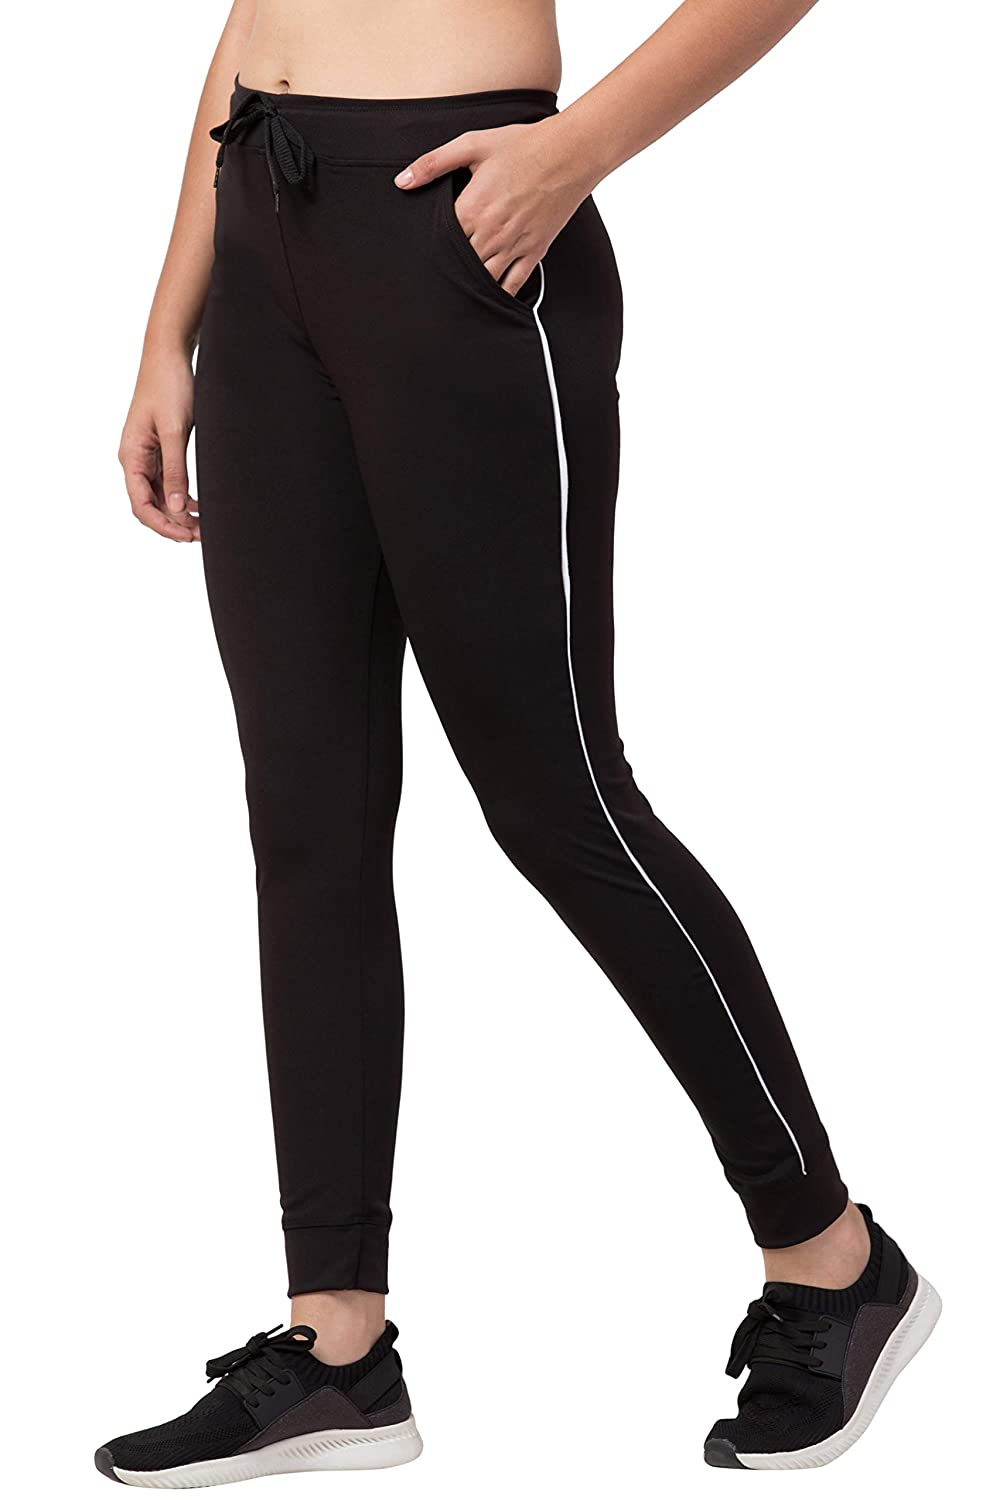 Buy Bluecon Women's Polyester Solid Slim Fit Sports Active Track  Pant/Lower/Yoga Pant for Women/Girls Gym Wear- Black at Amazon.in